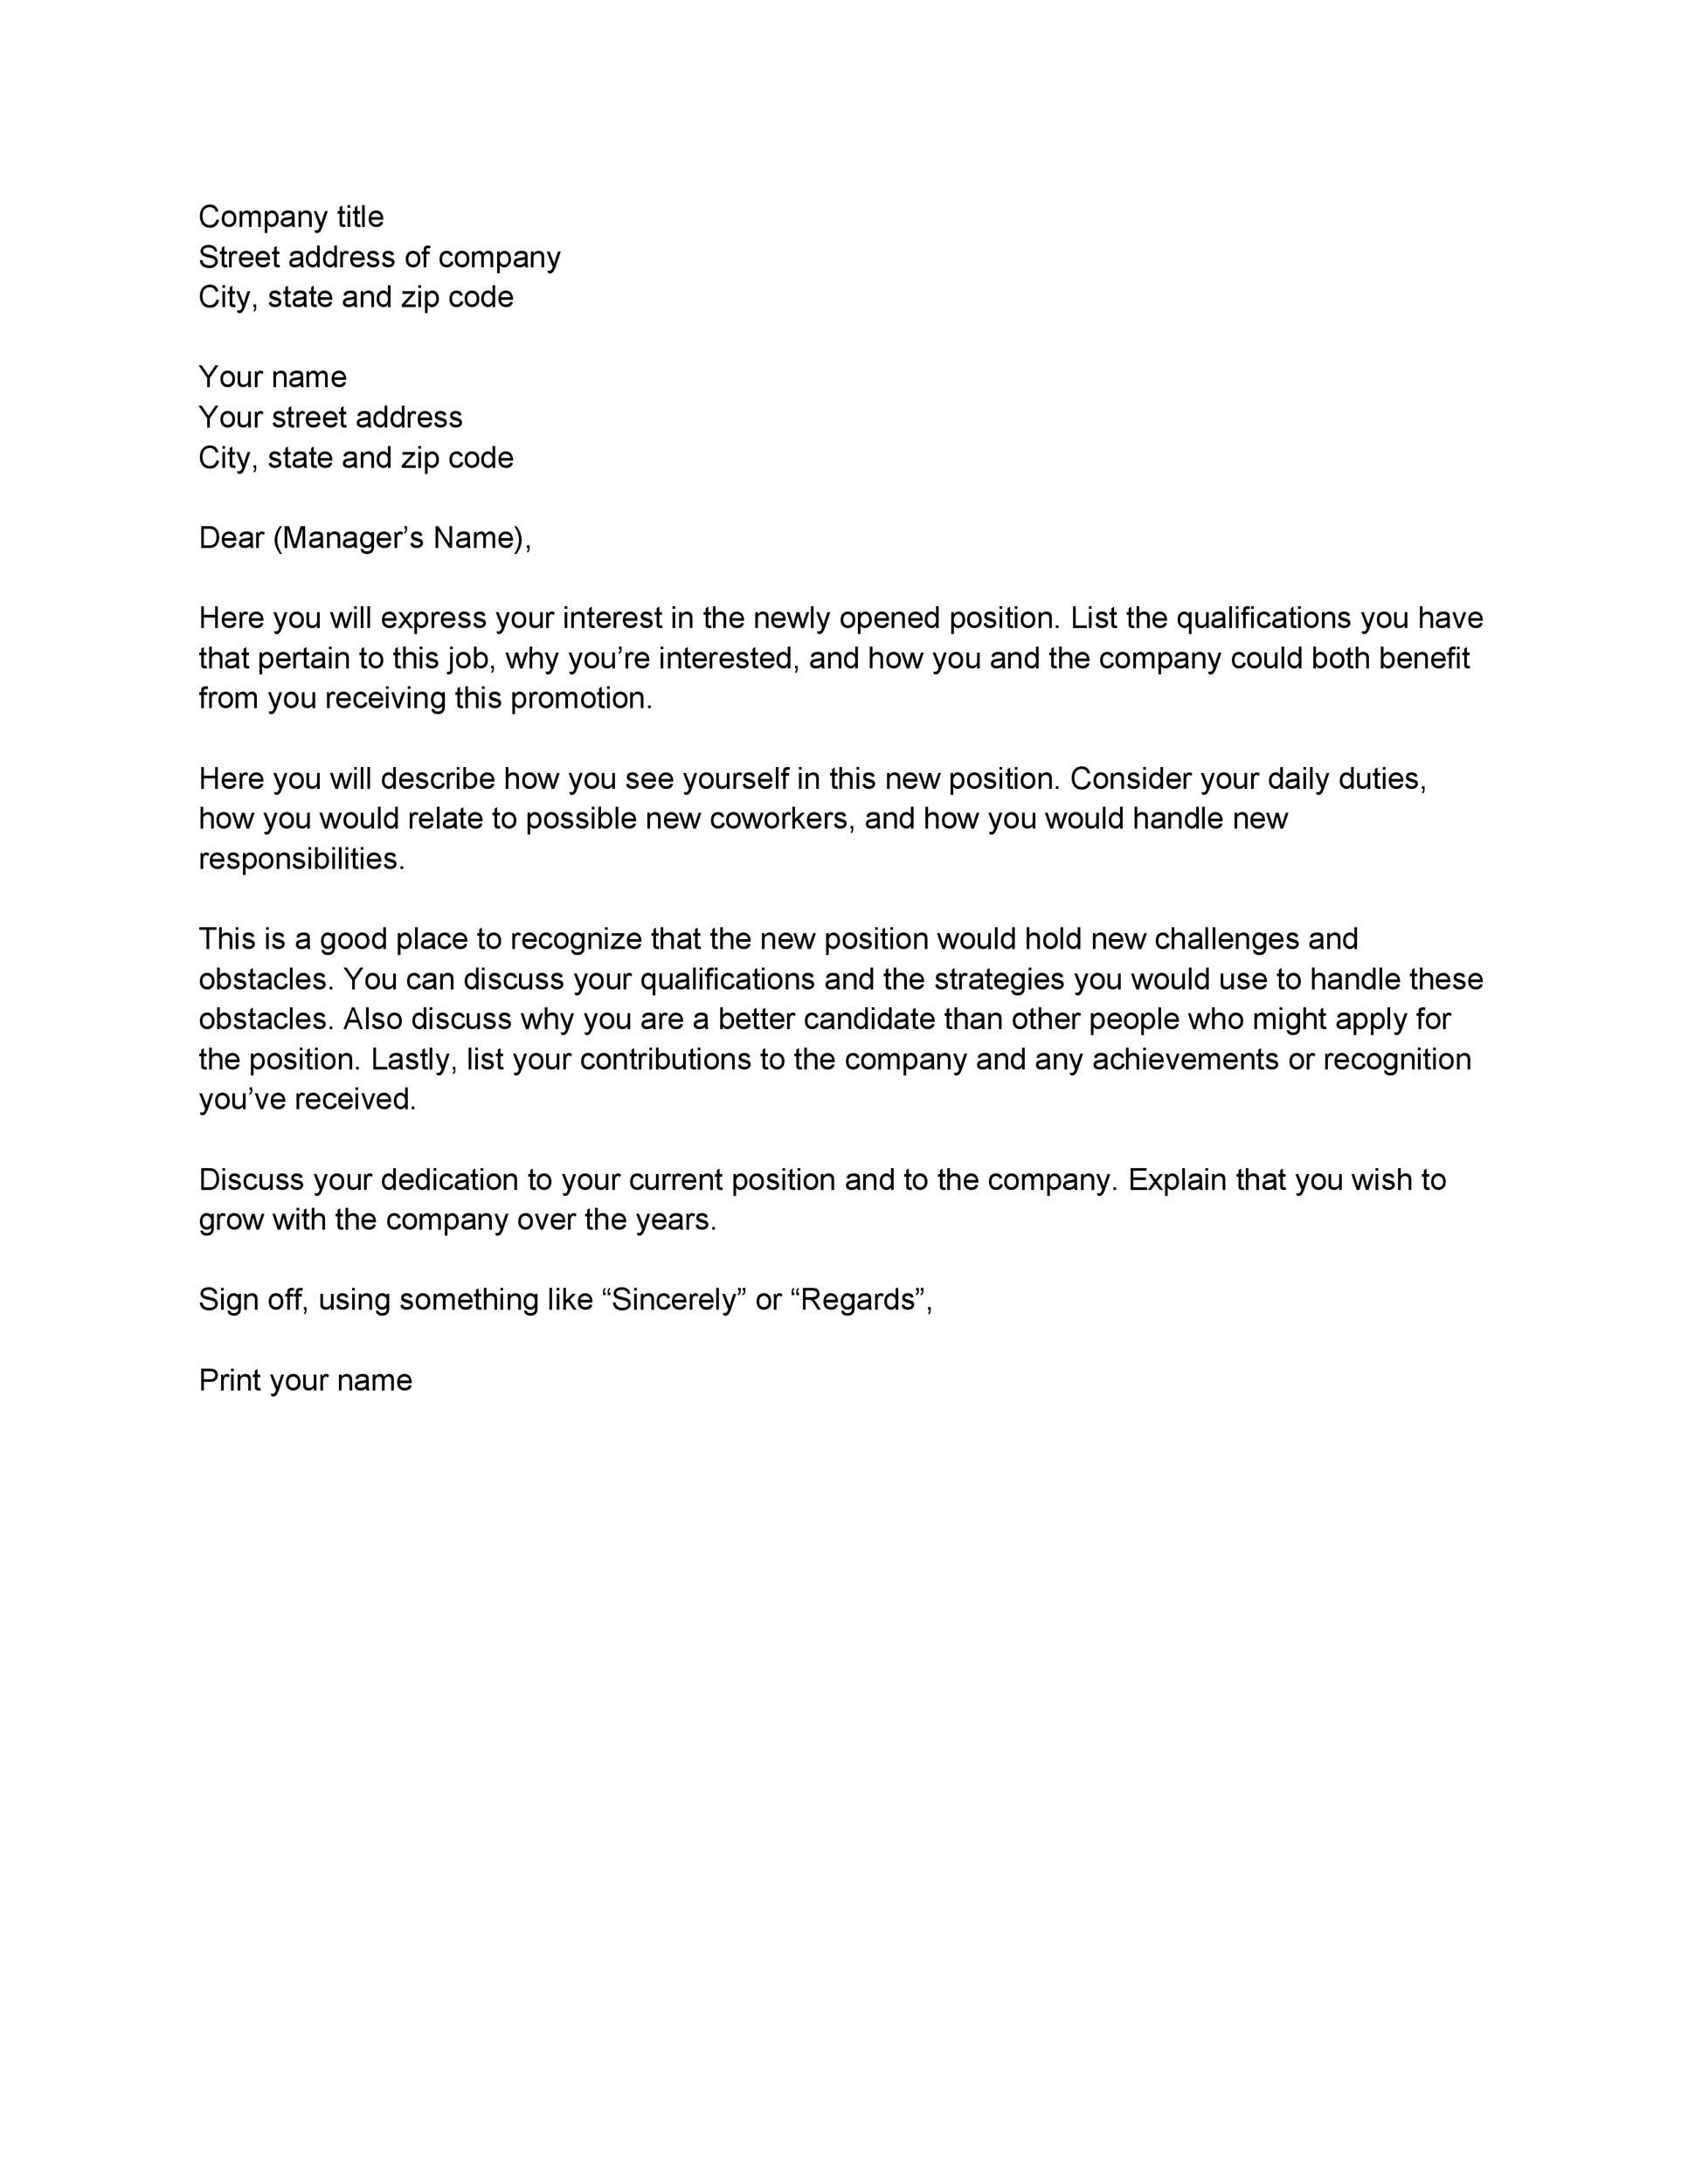 letter of interest template for a job 30 amazing letter of interest samples templates